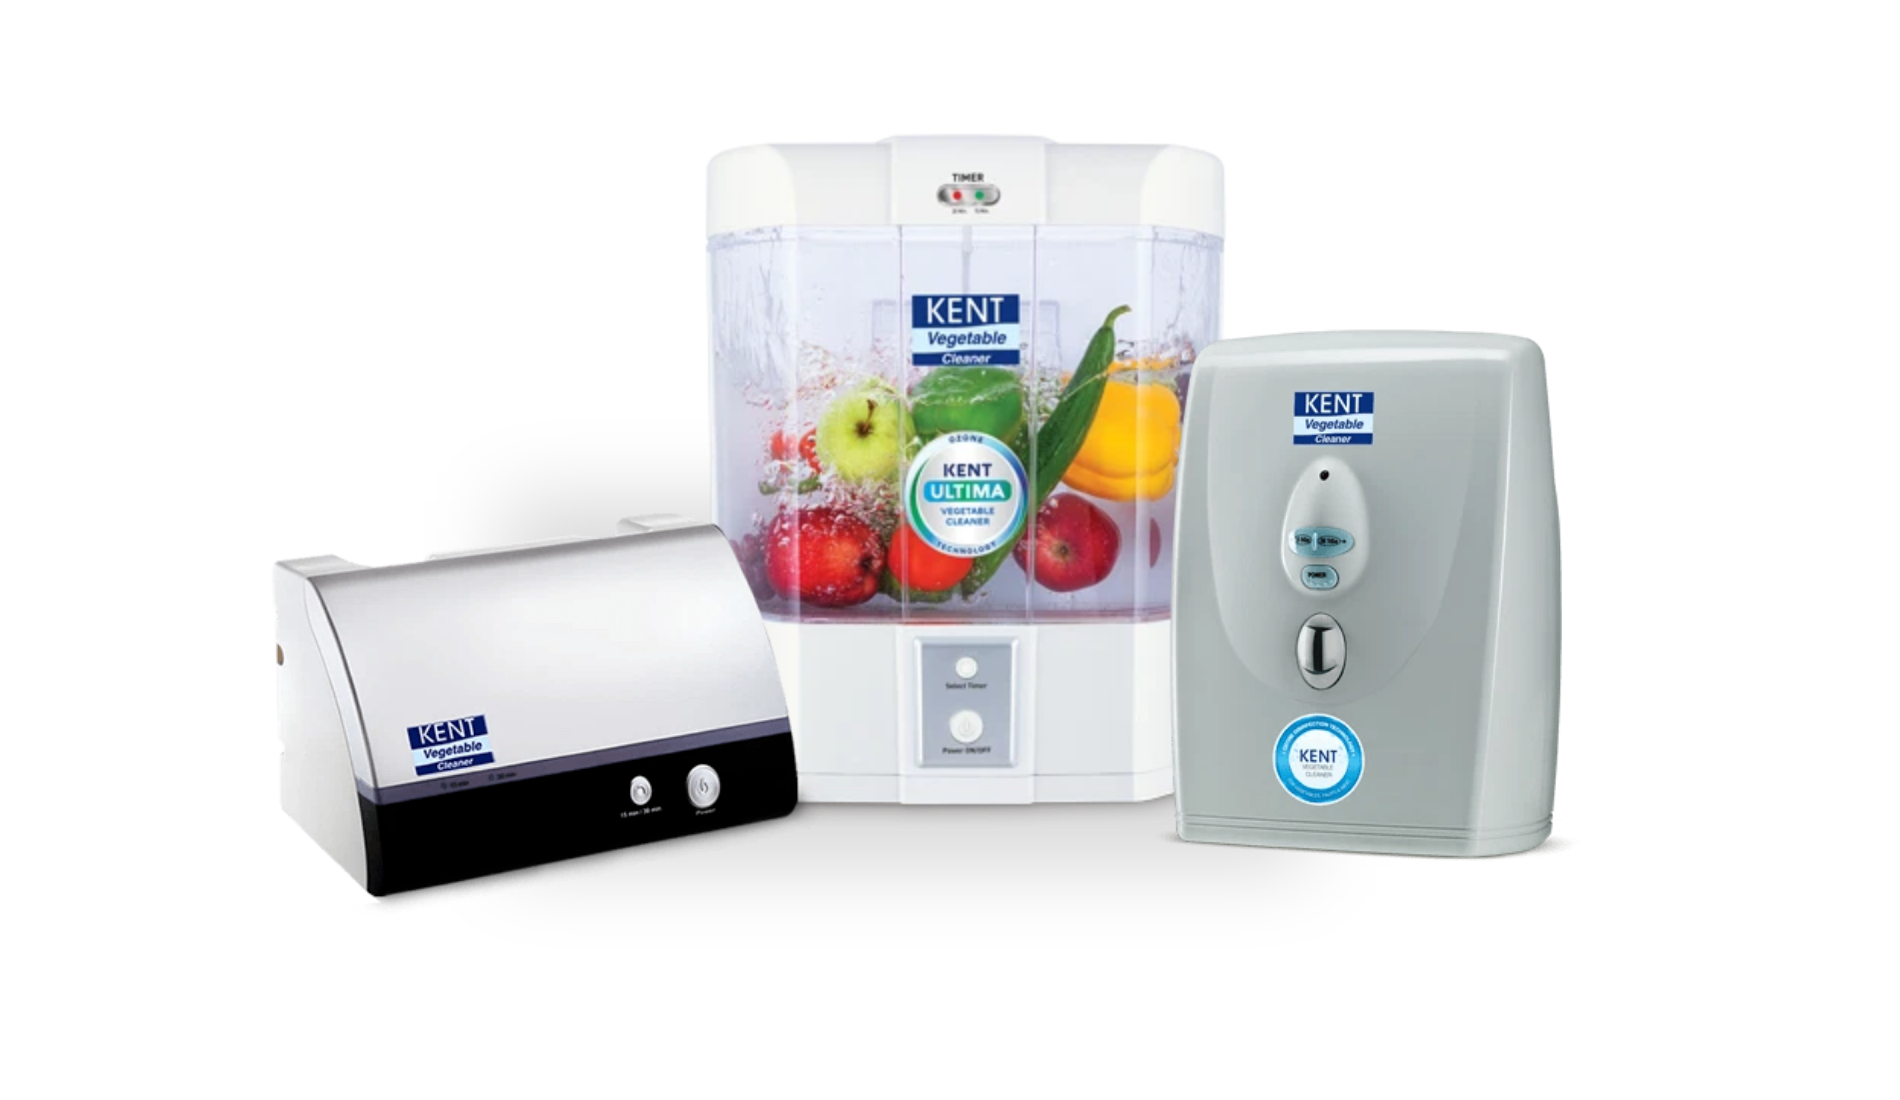 KENT Vegetable and Fruit Cleaner